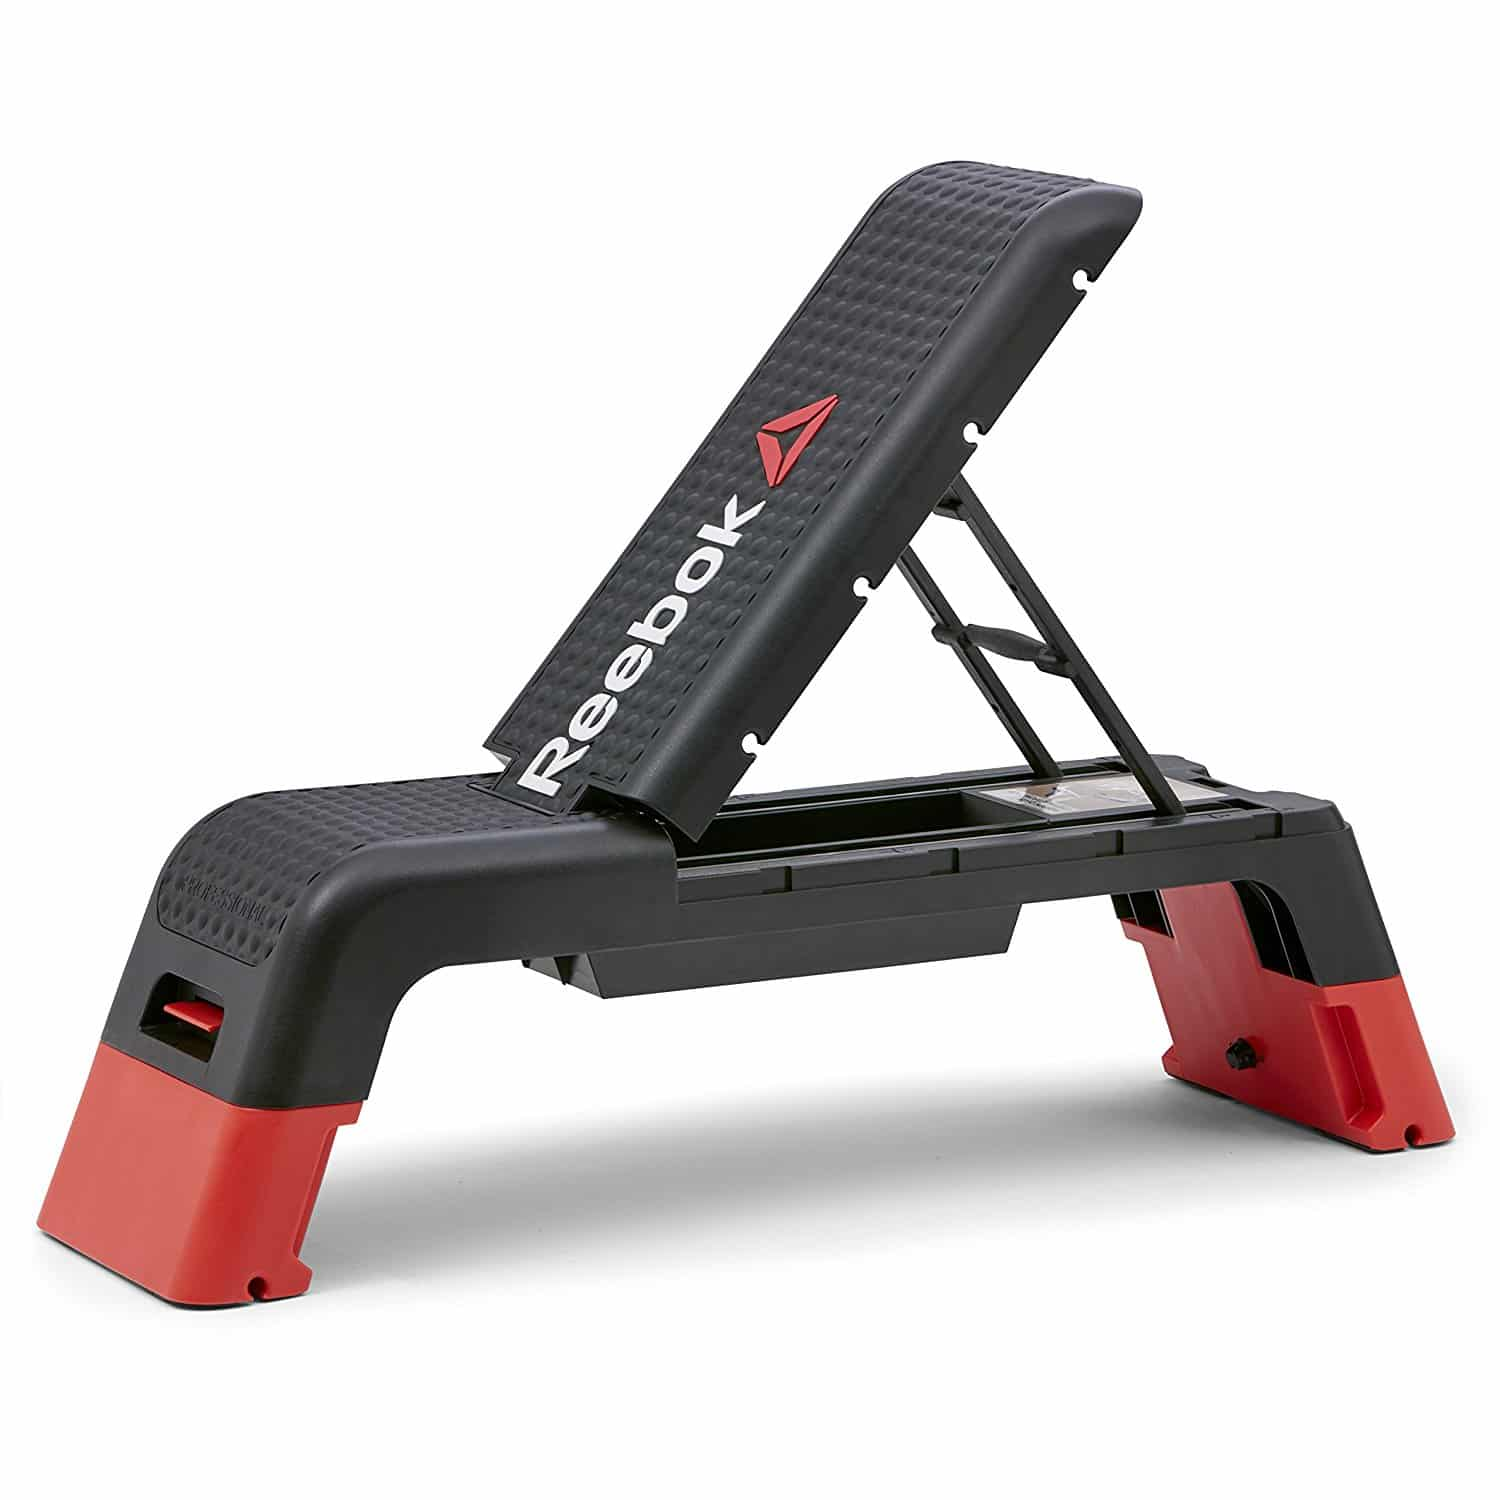 Champs Weight Bench | Craigslist Weight Bench | Bollinger Weight Bench